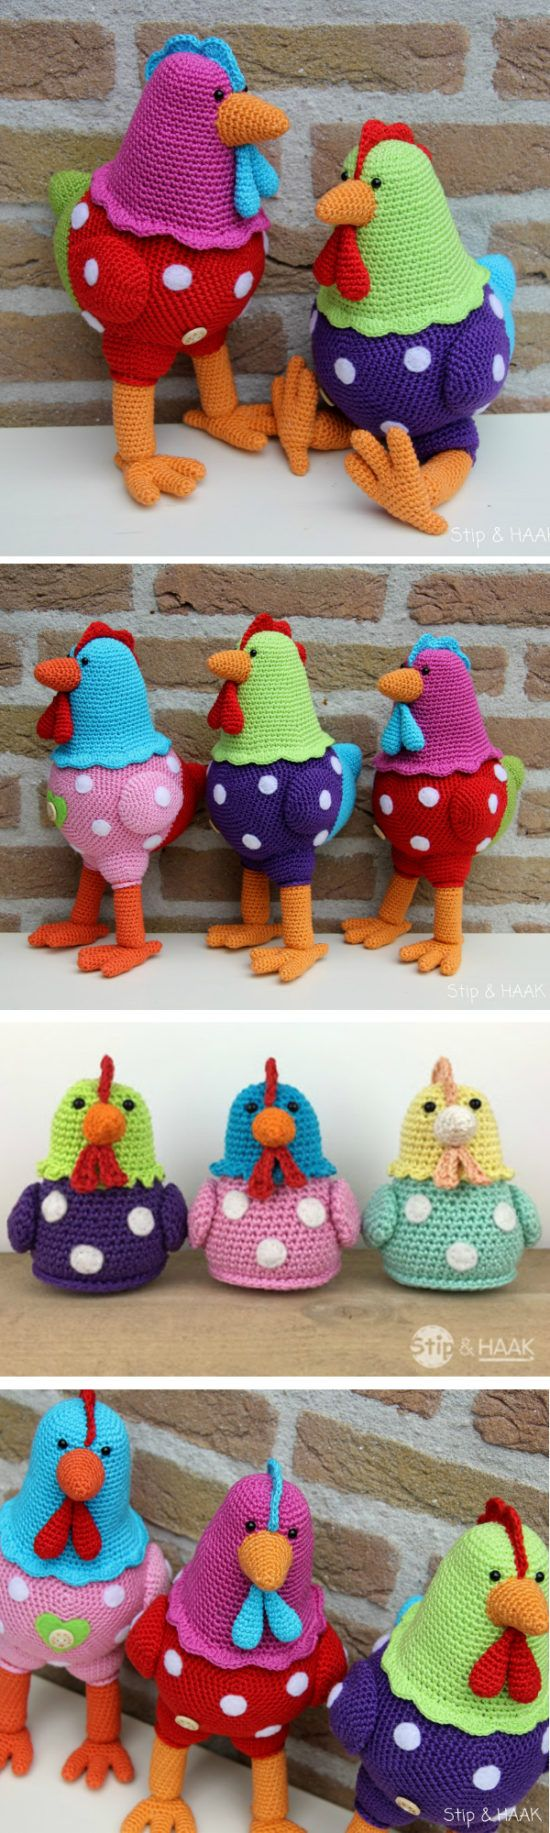 Vintage Crochet Chicken Patterns Cute Ideas